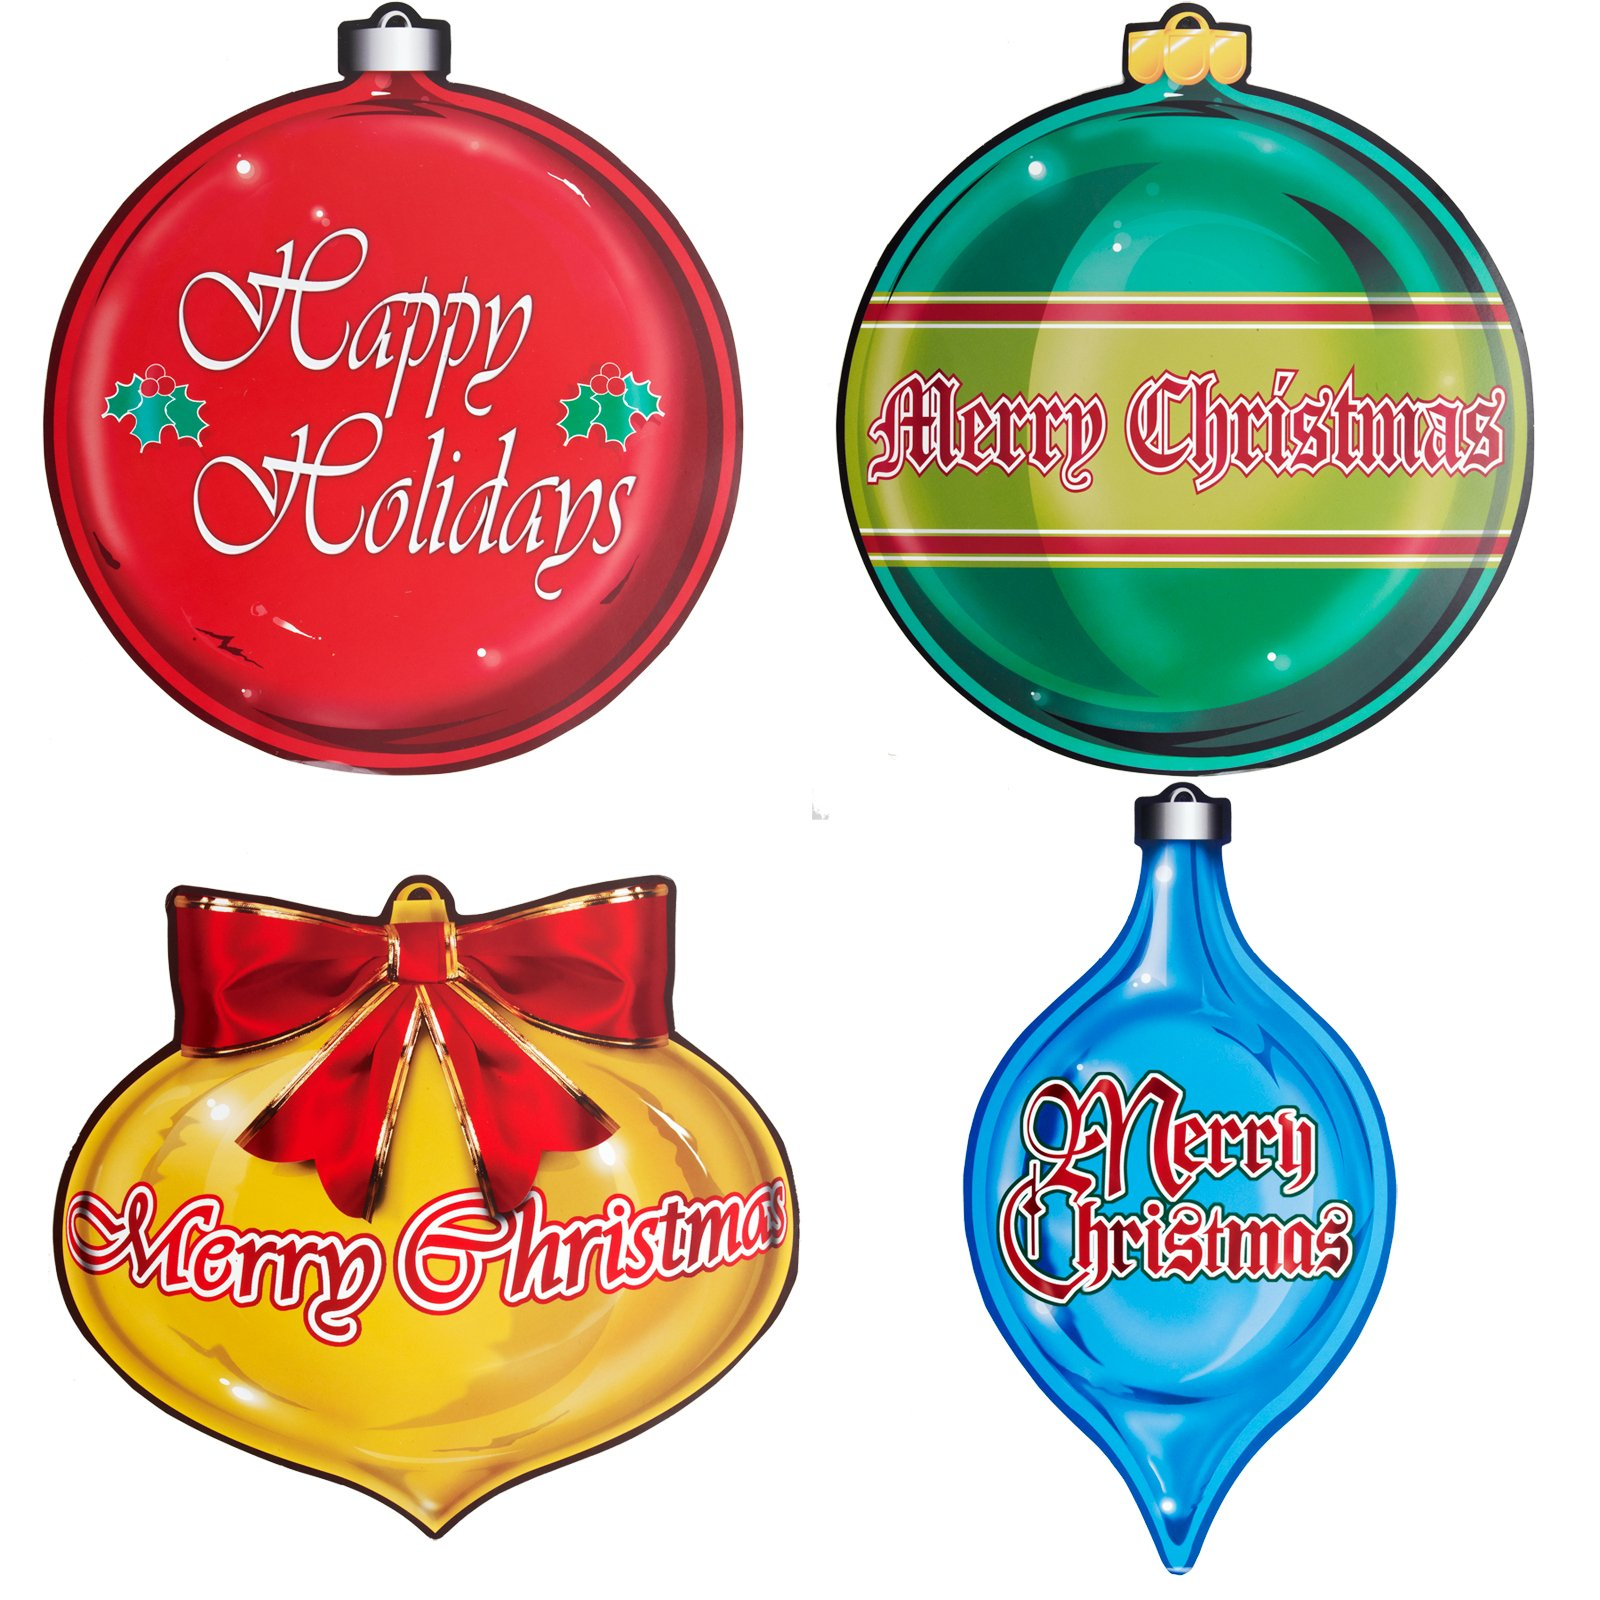 It's just a graphic of Printable Christmas Decorations ( Cutouts) with regard to silhouette